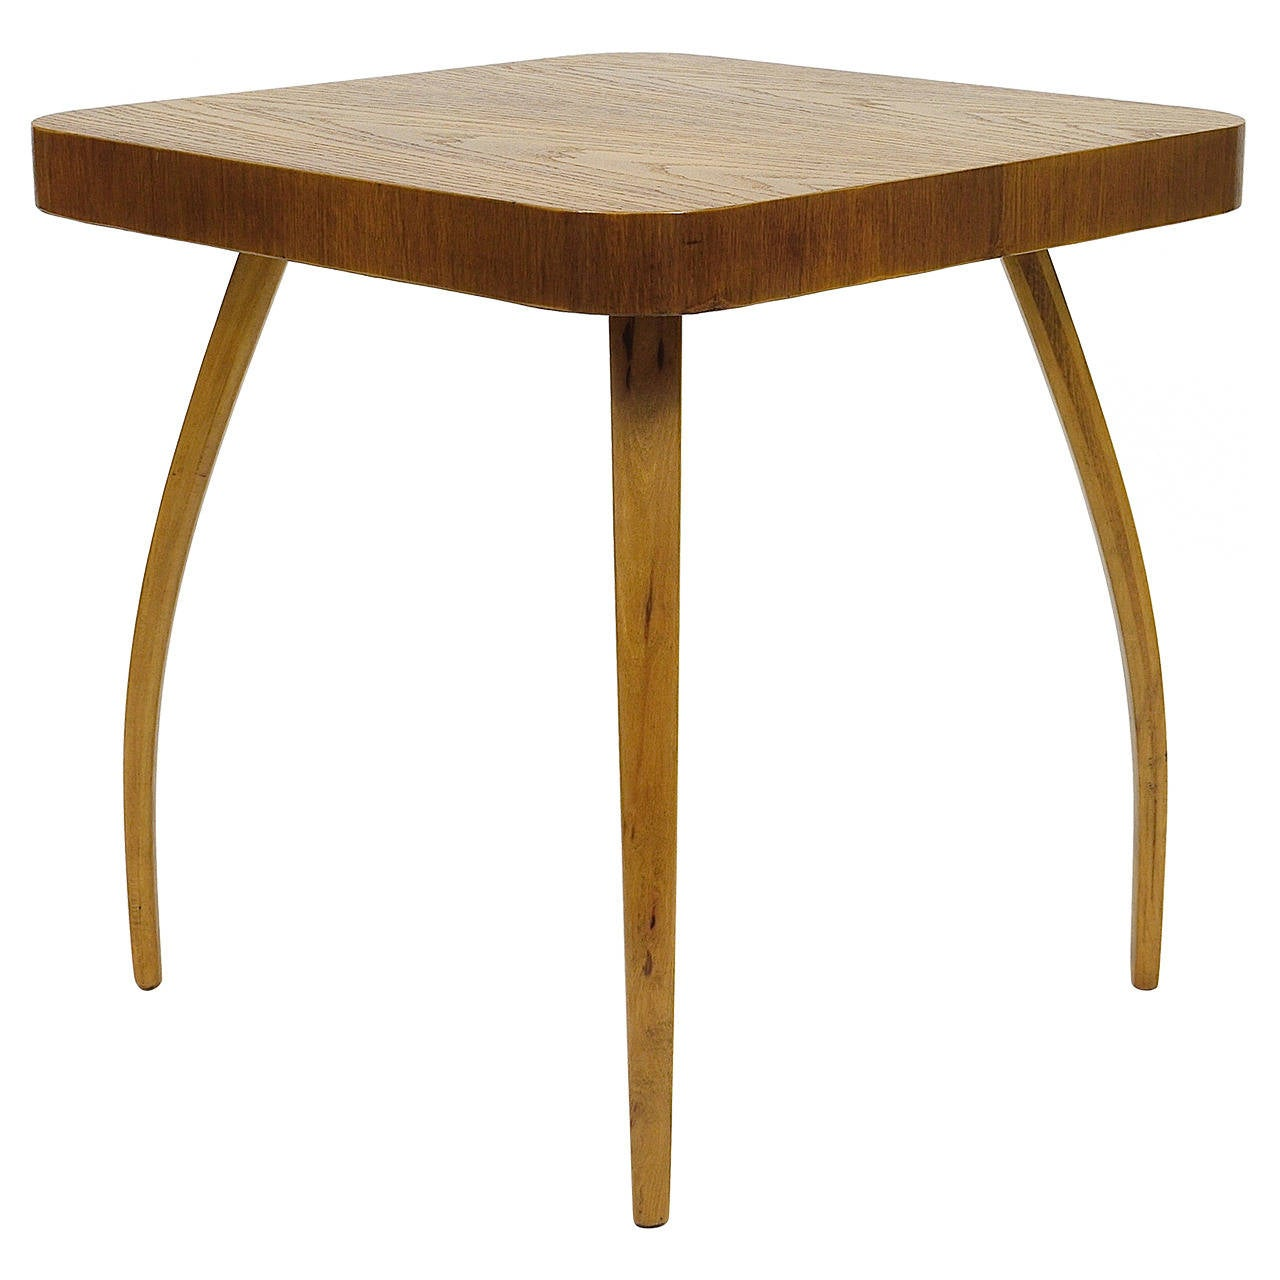 1930s Spider Side Table H259 by Jindrich Halabala, Bauhaus, Excellent Condition